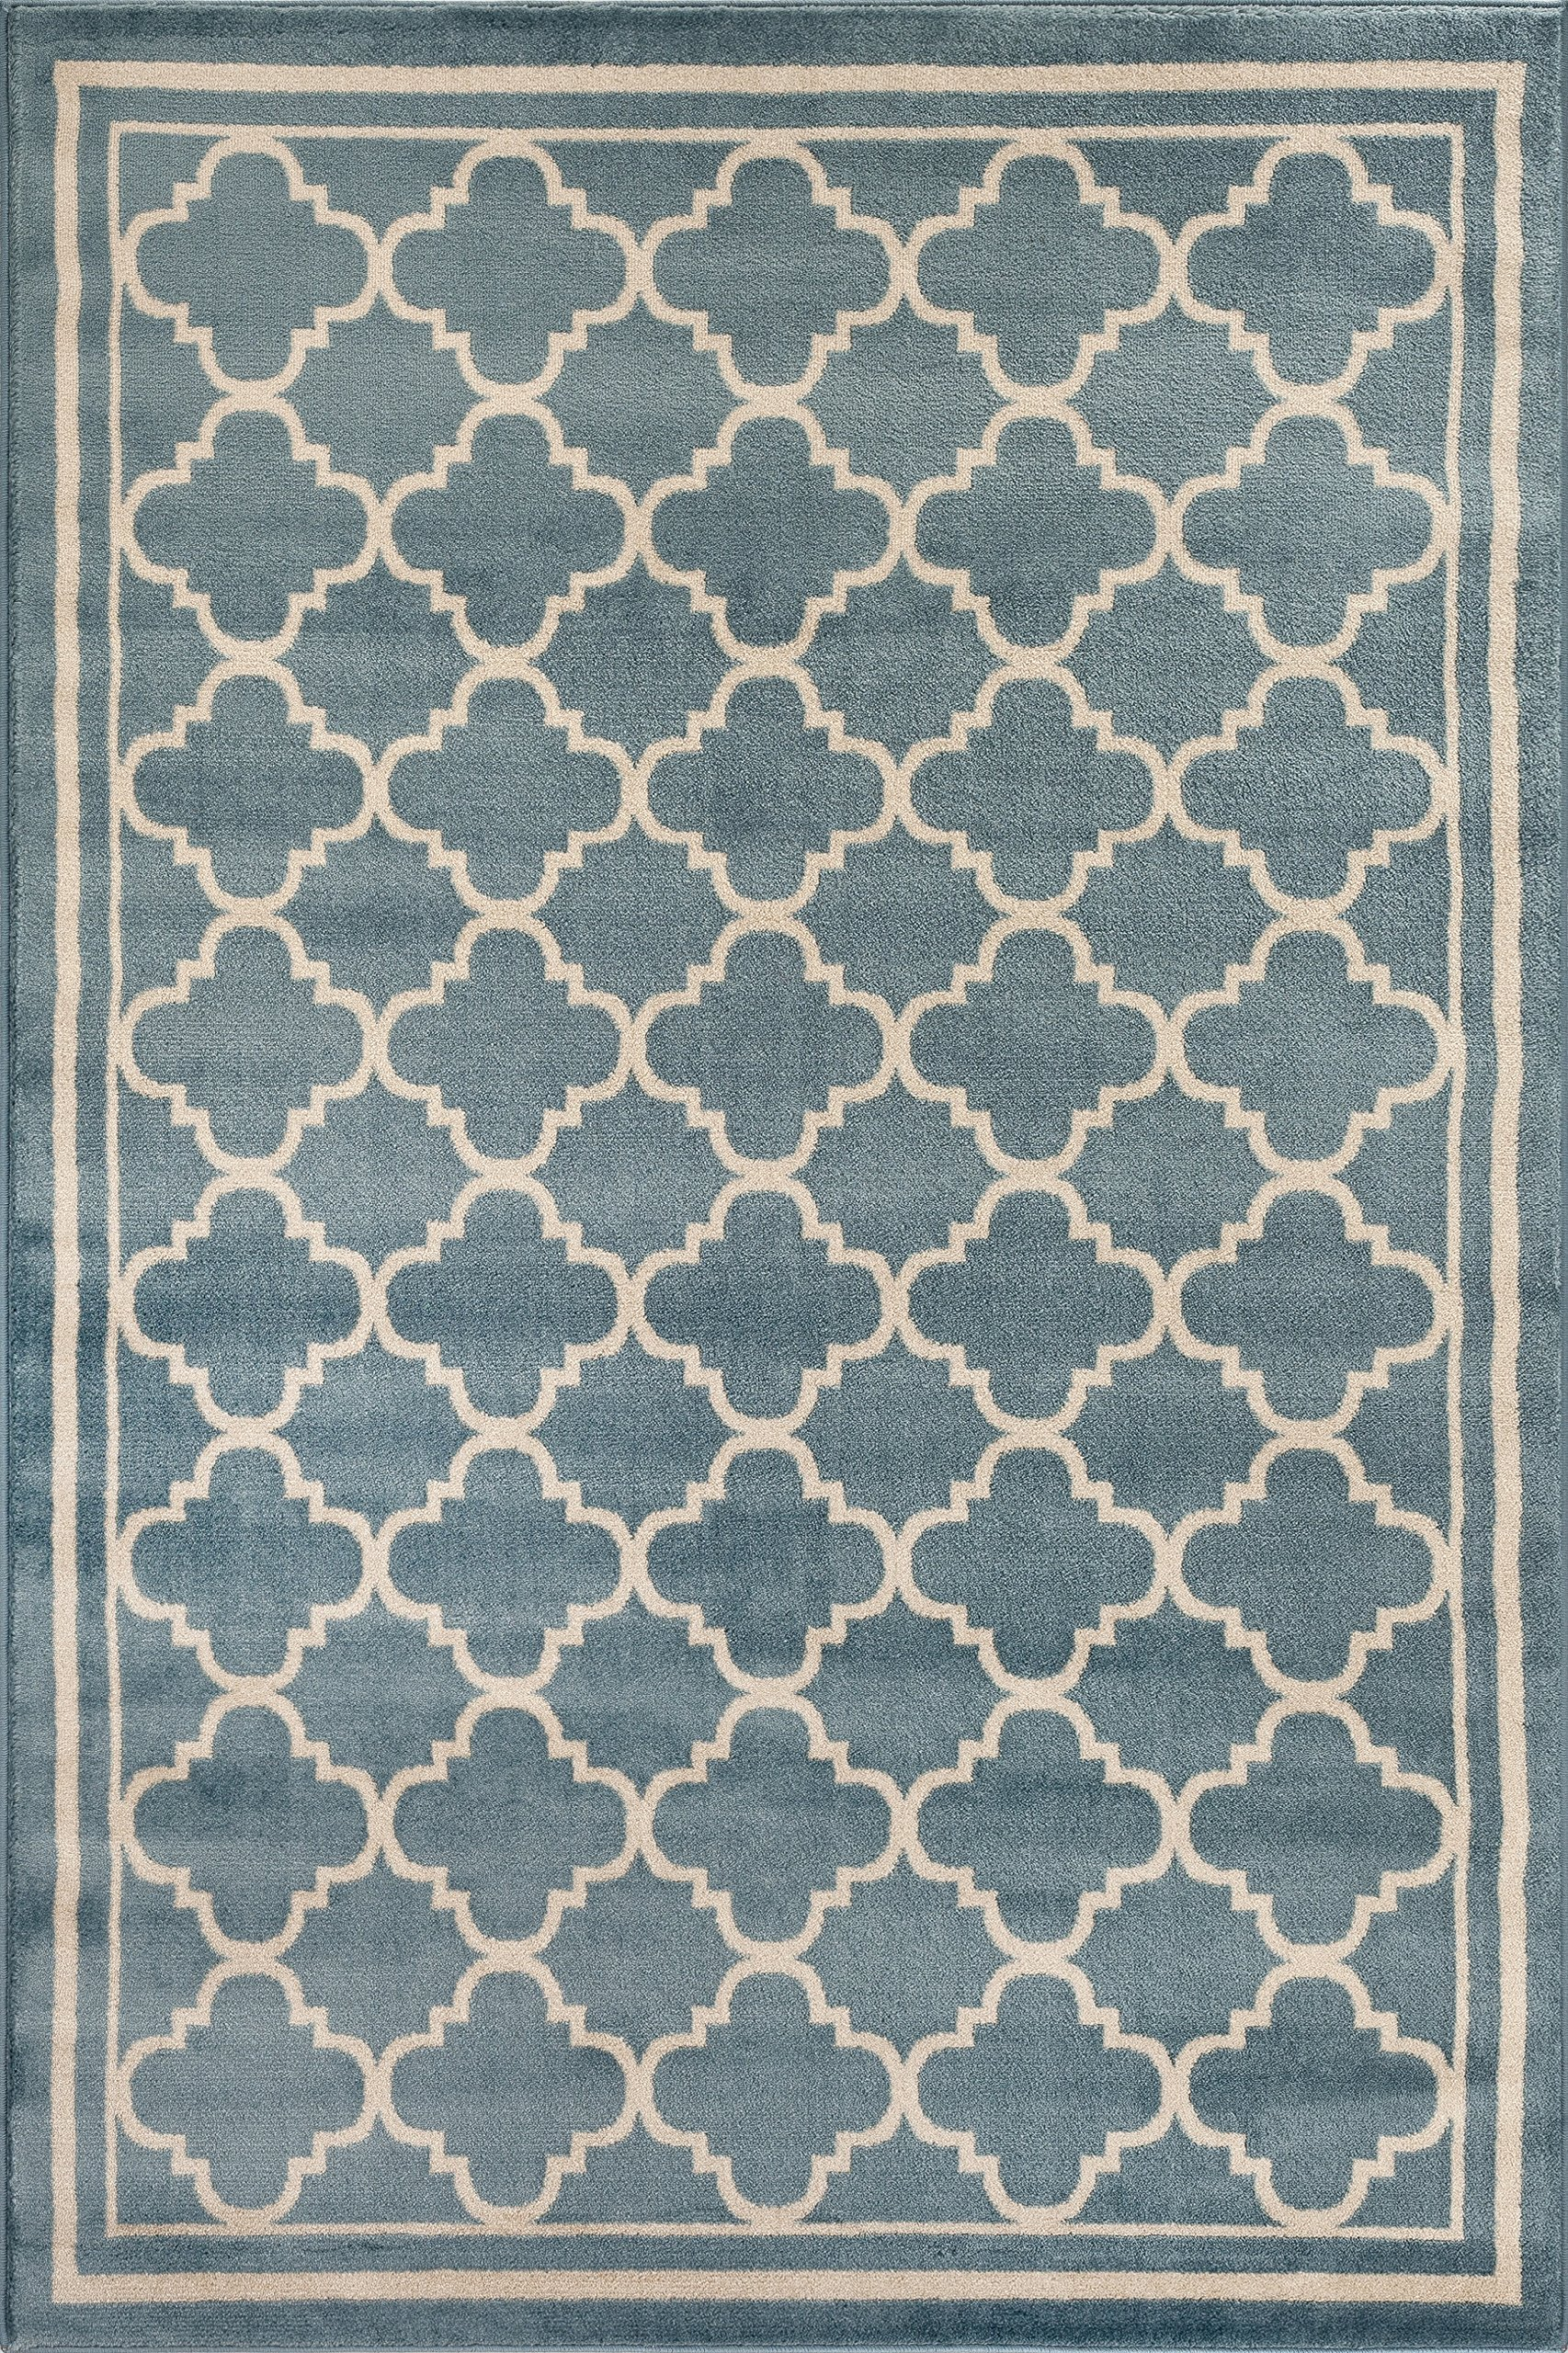 """Rug Decor Trellis Contemporary Modern Design Area Rug, 5' 3"""" by 7' 3"""", Blue - Brand New Area Rug No Fringe For Clean Design Stain Resistant - living-room-soft-furnishings, living-room, area-rugs - B1g917B1JkS -"""